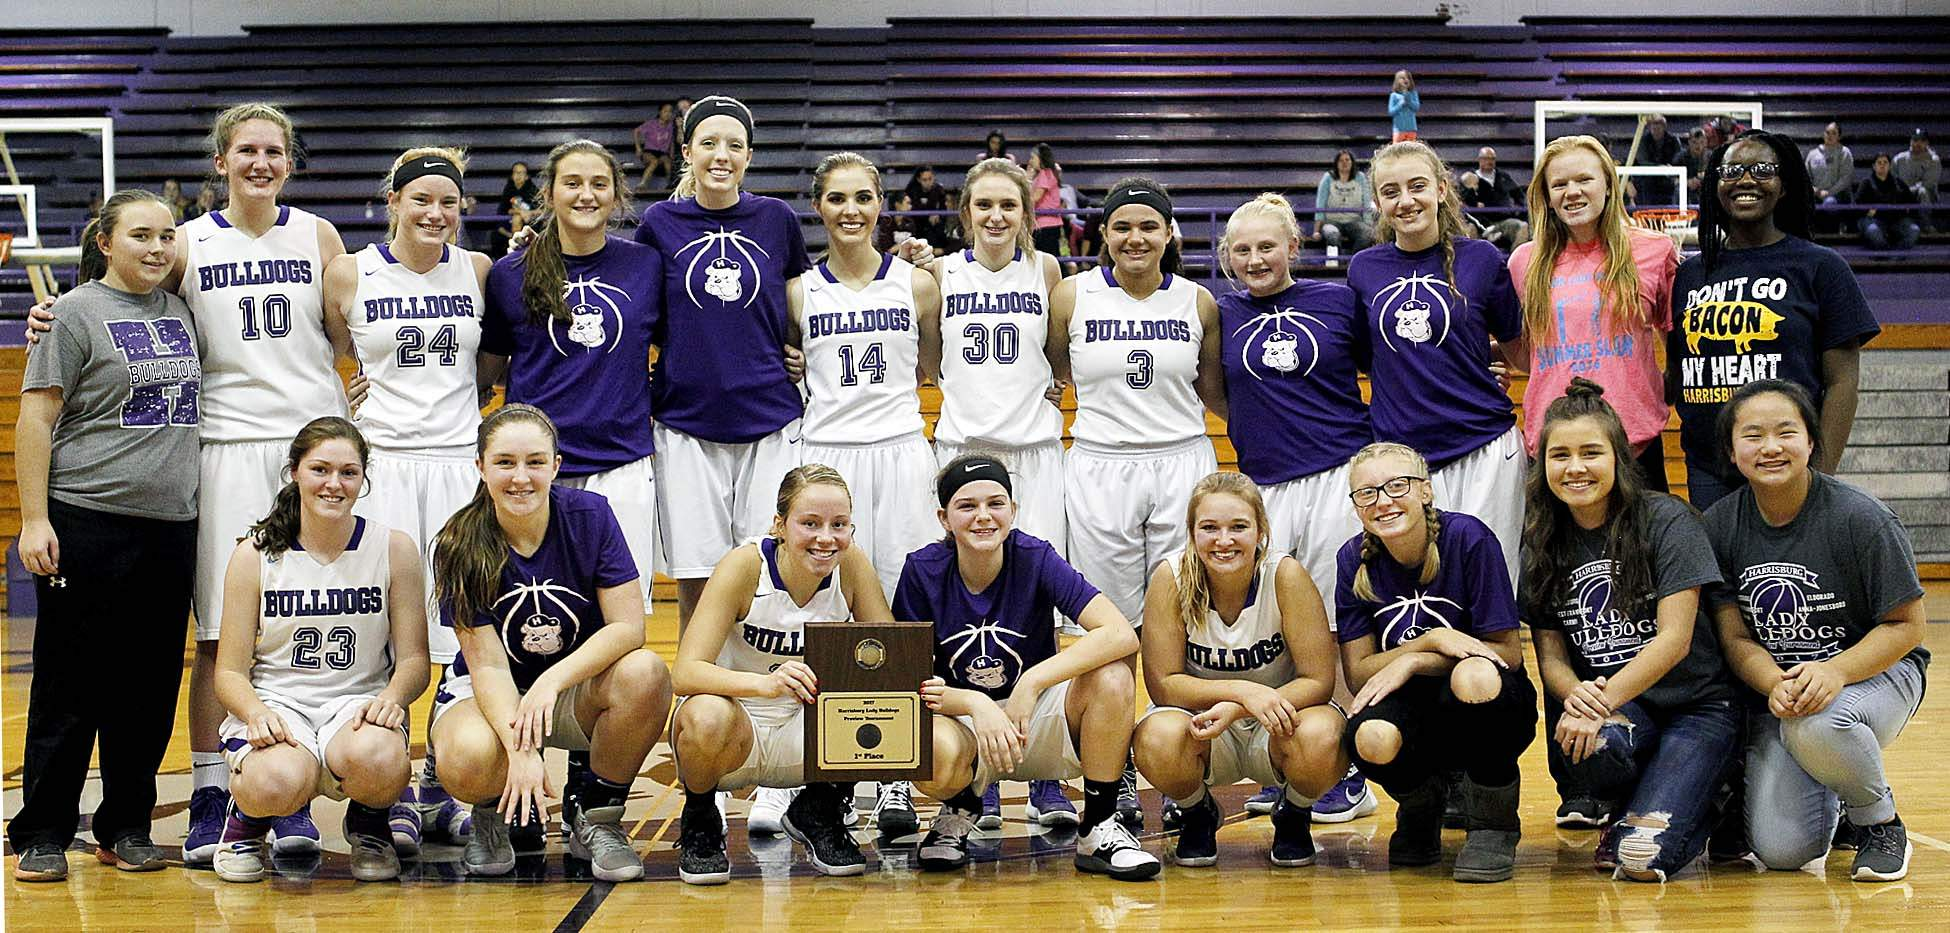 Members of the Harrisburg girls' basketball team pose with the championship plaque after the Bulldogs went 4-0 in their own invite. Harrisburg knocked off Eldorado 71-41 for their third straight title.